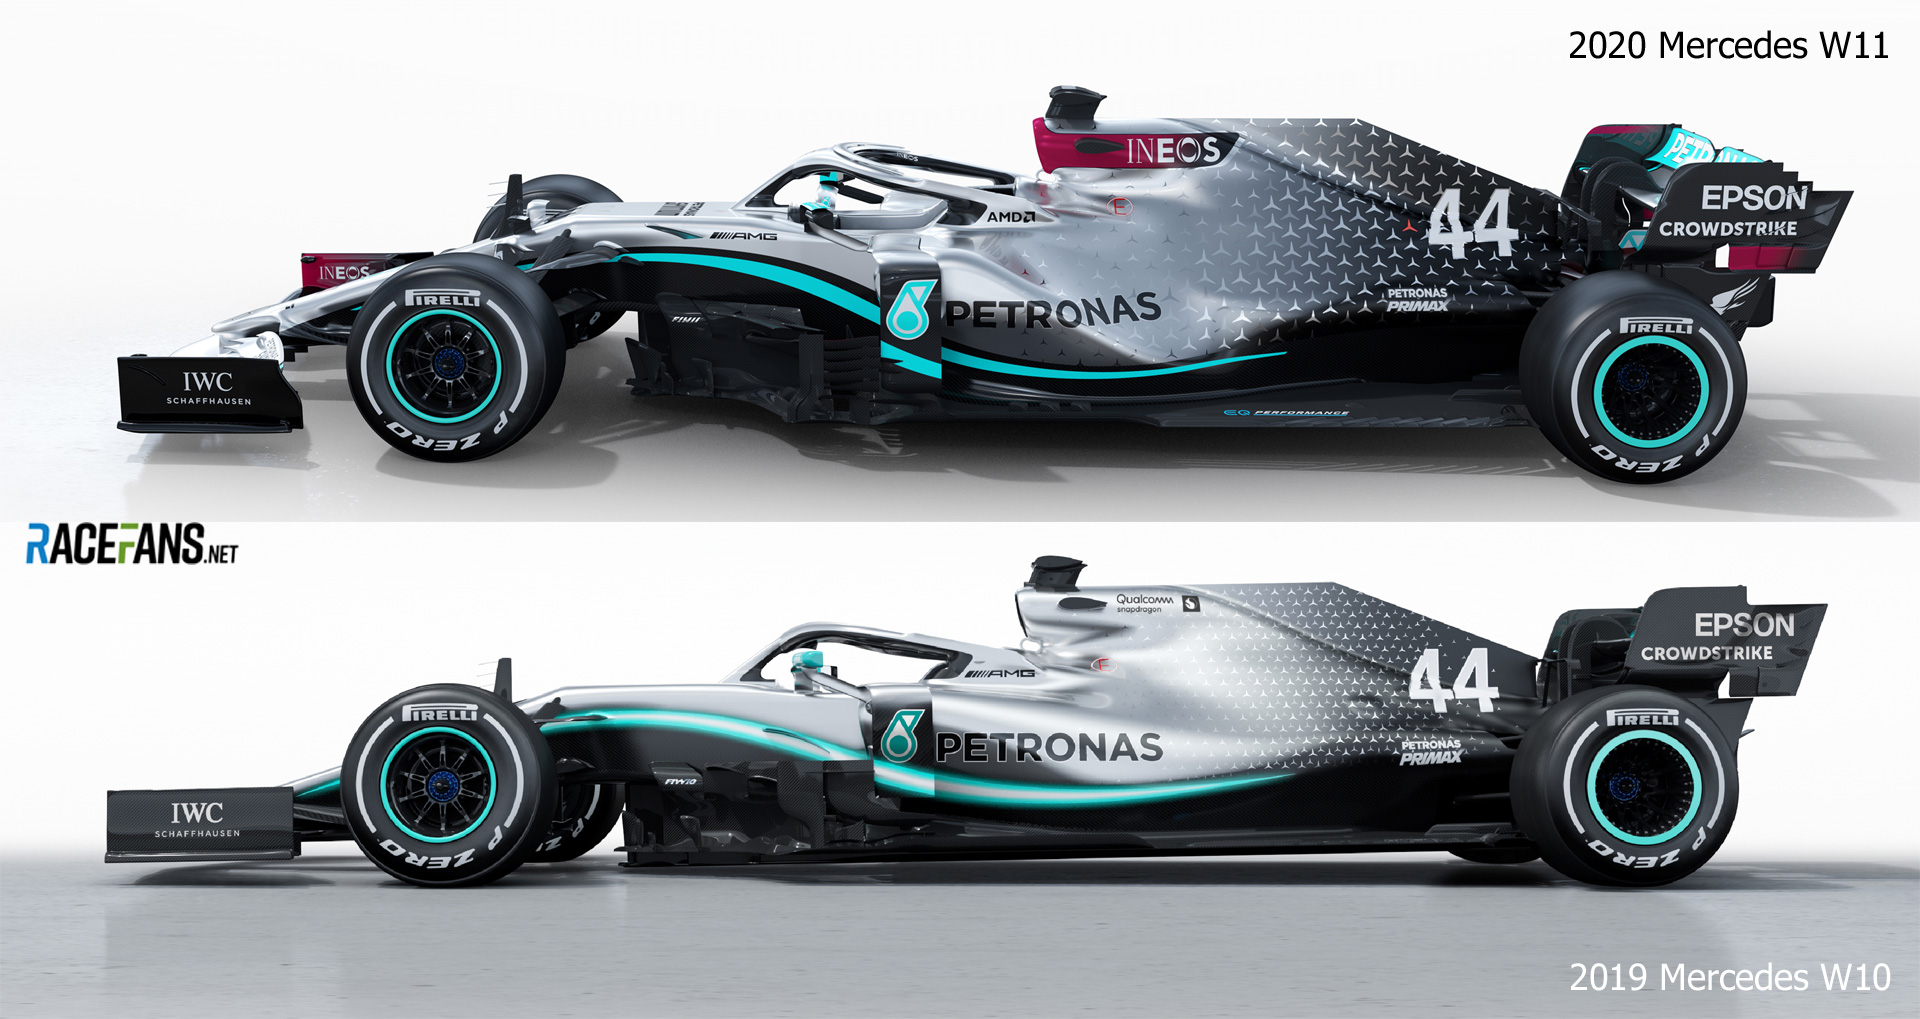 Mercedes 2020 and 2019 cars - side